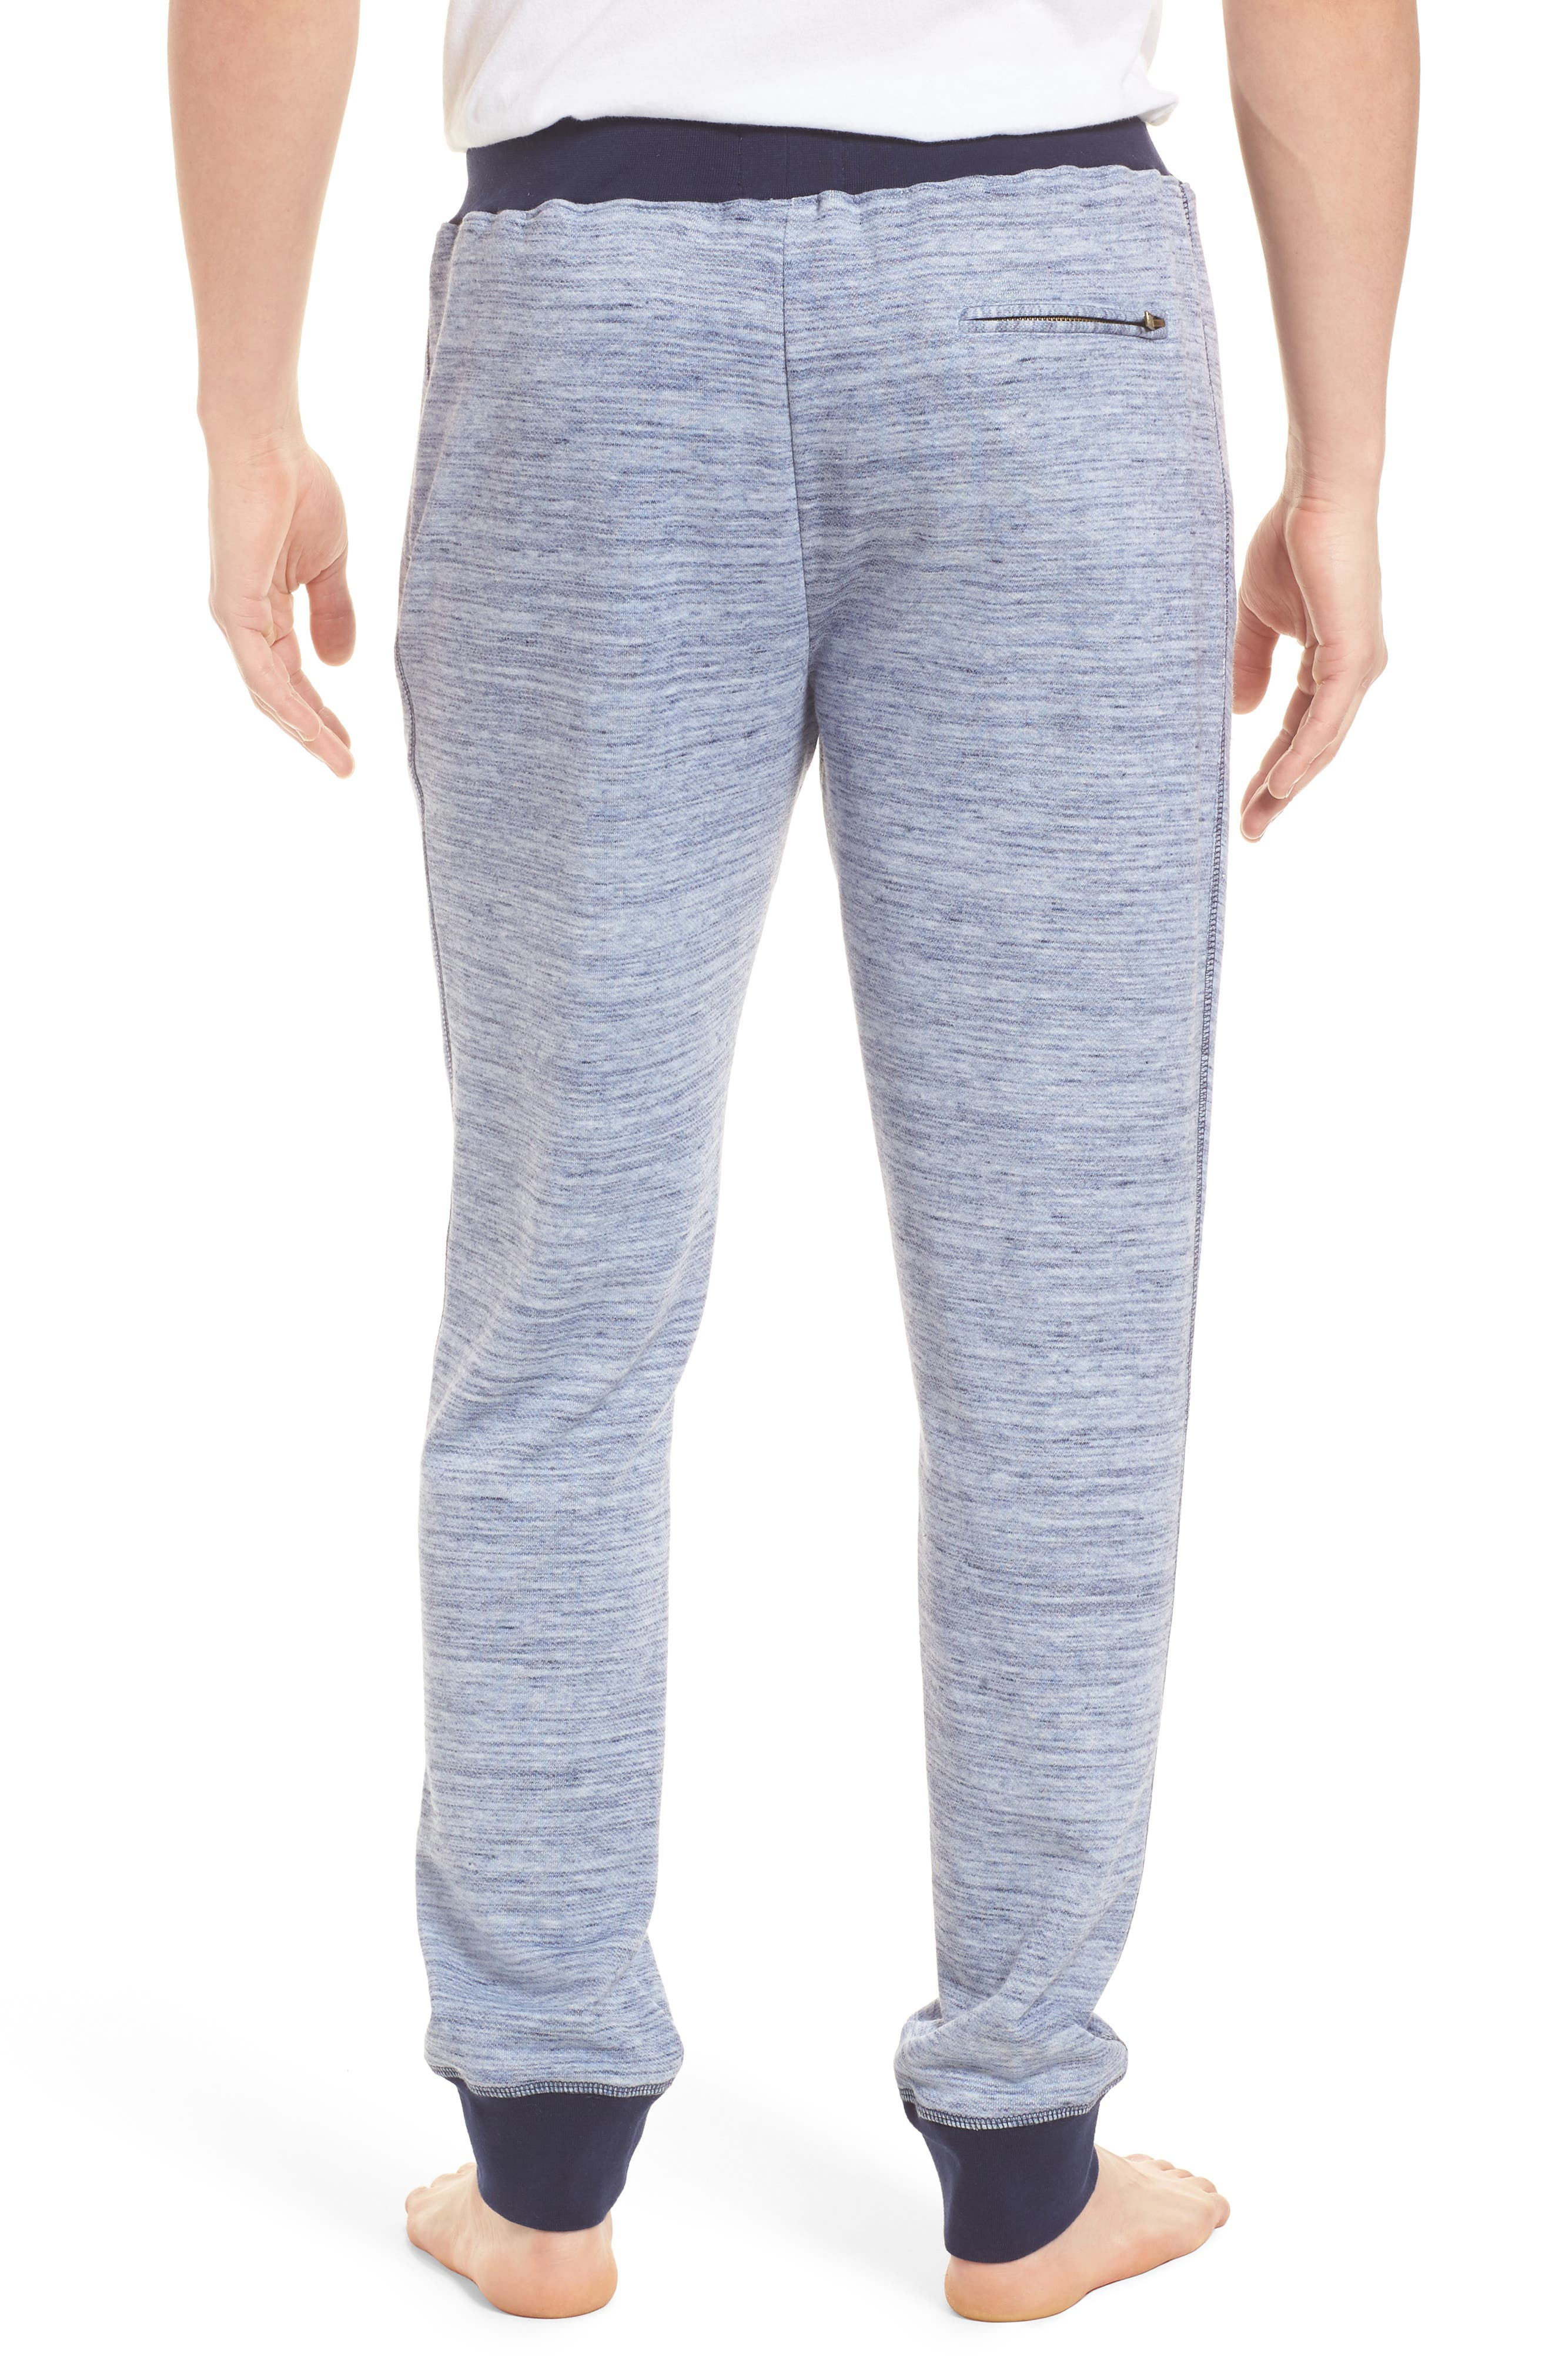 Swept In Waves Lounge Pants,                             Alternate thumbnail 2, color,                             400